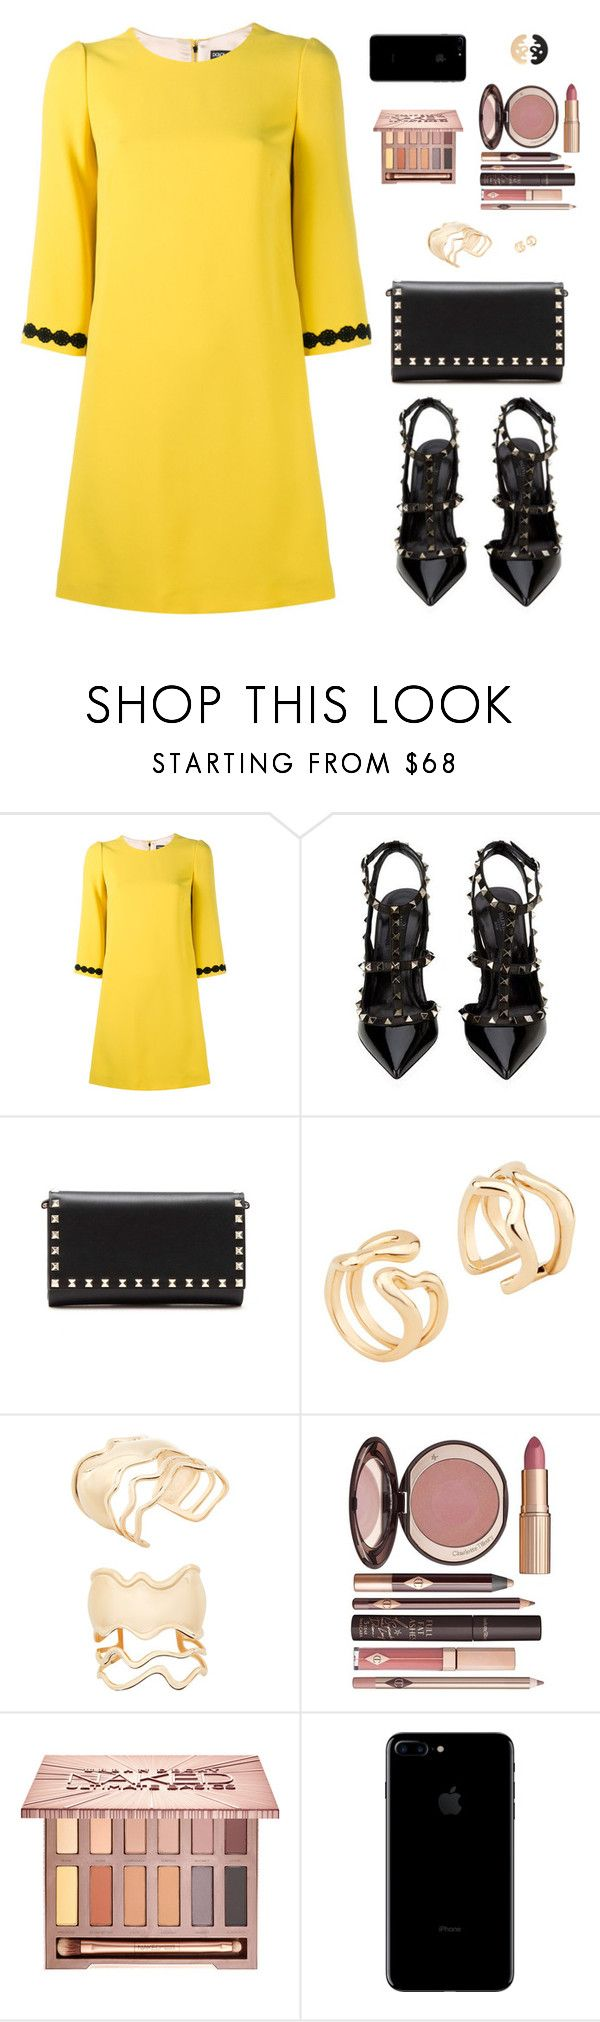 """Sin título #4581"" by mdmsb ❤ liked on Polyvore featuring Dolce&Gabbana, Valentino, Charlotte Tilbury, Urban Decay, dolceandgabbana and valentino"